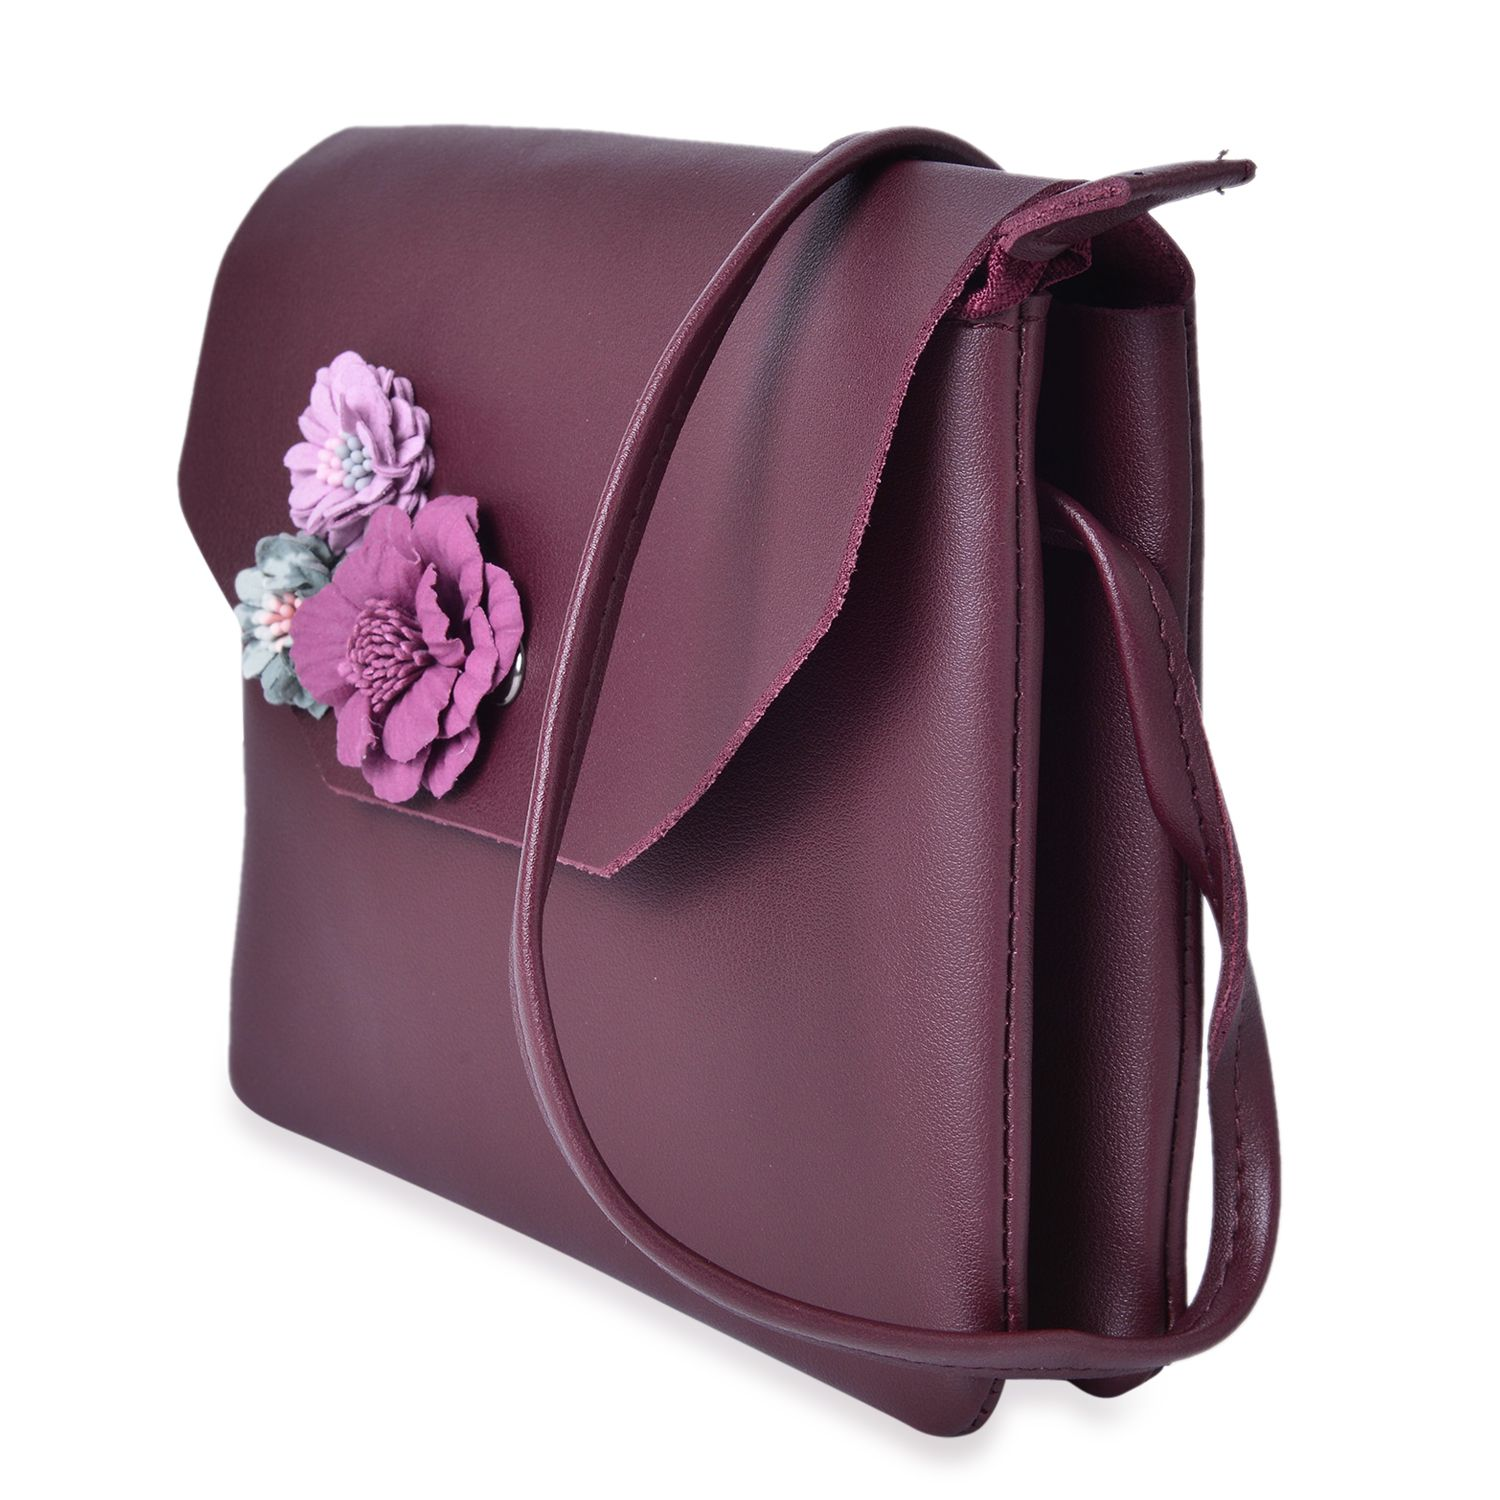 Burgundy Faux Leather 3D Floral Crossbody Bag (7.5x6.5 in)  a587b453ad2fc